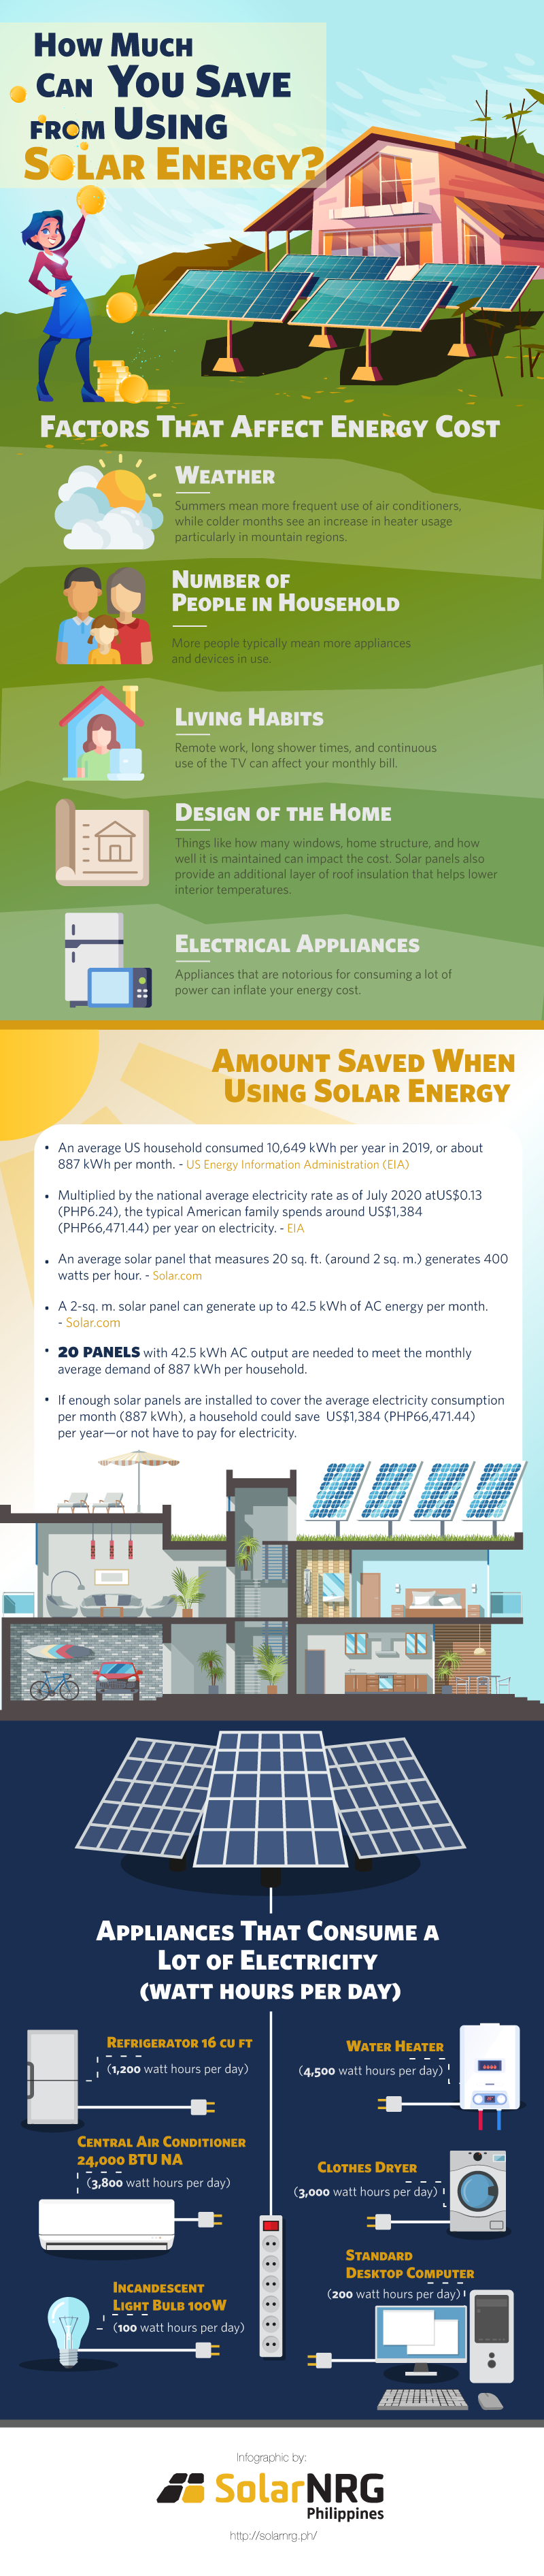 How Much Can You Save from Using Solar Energy?